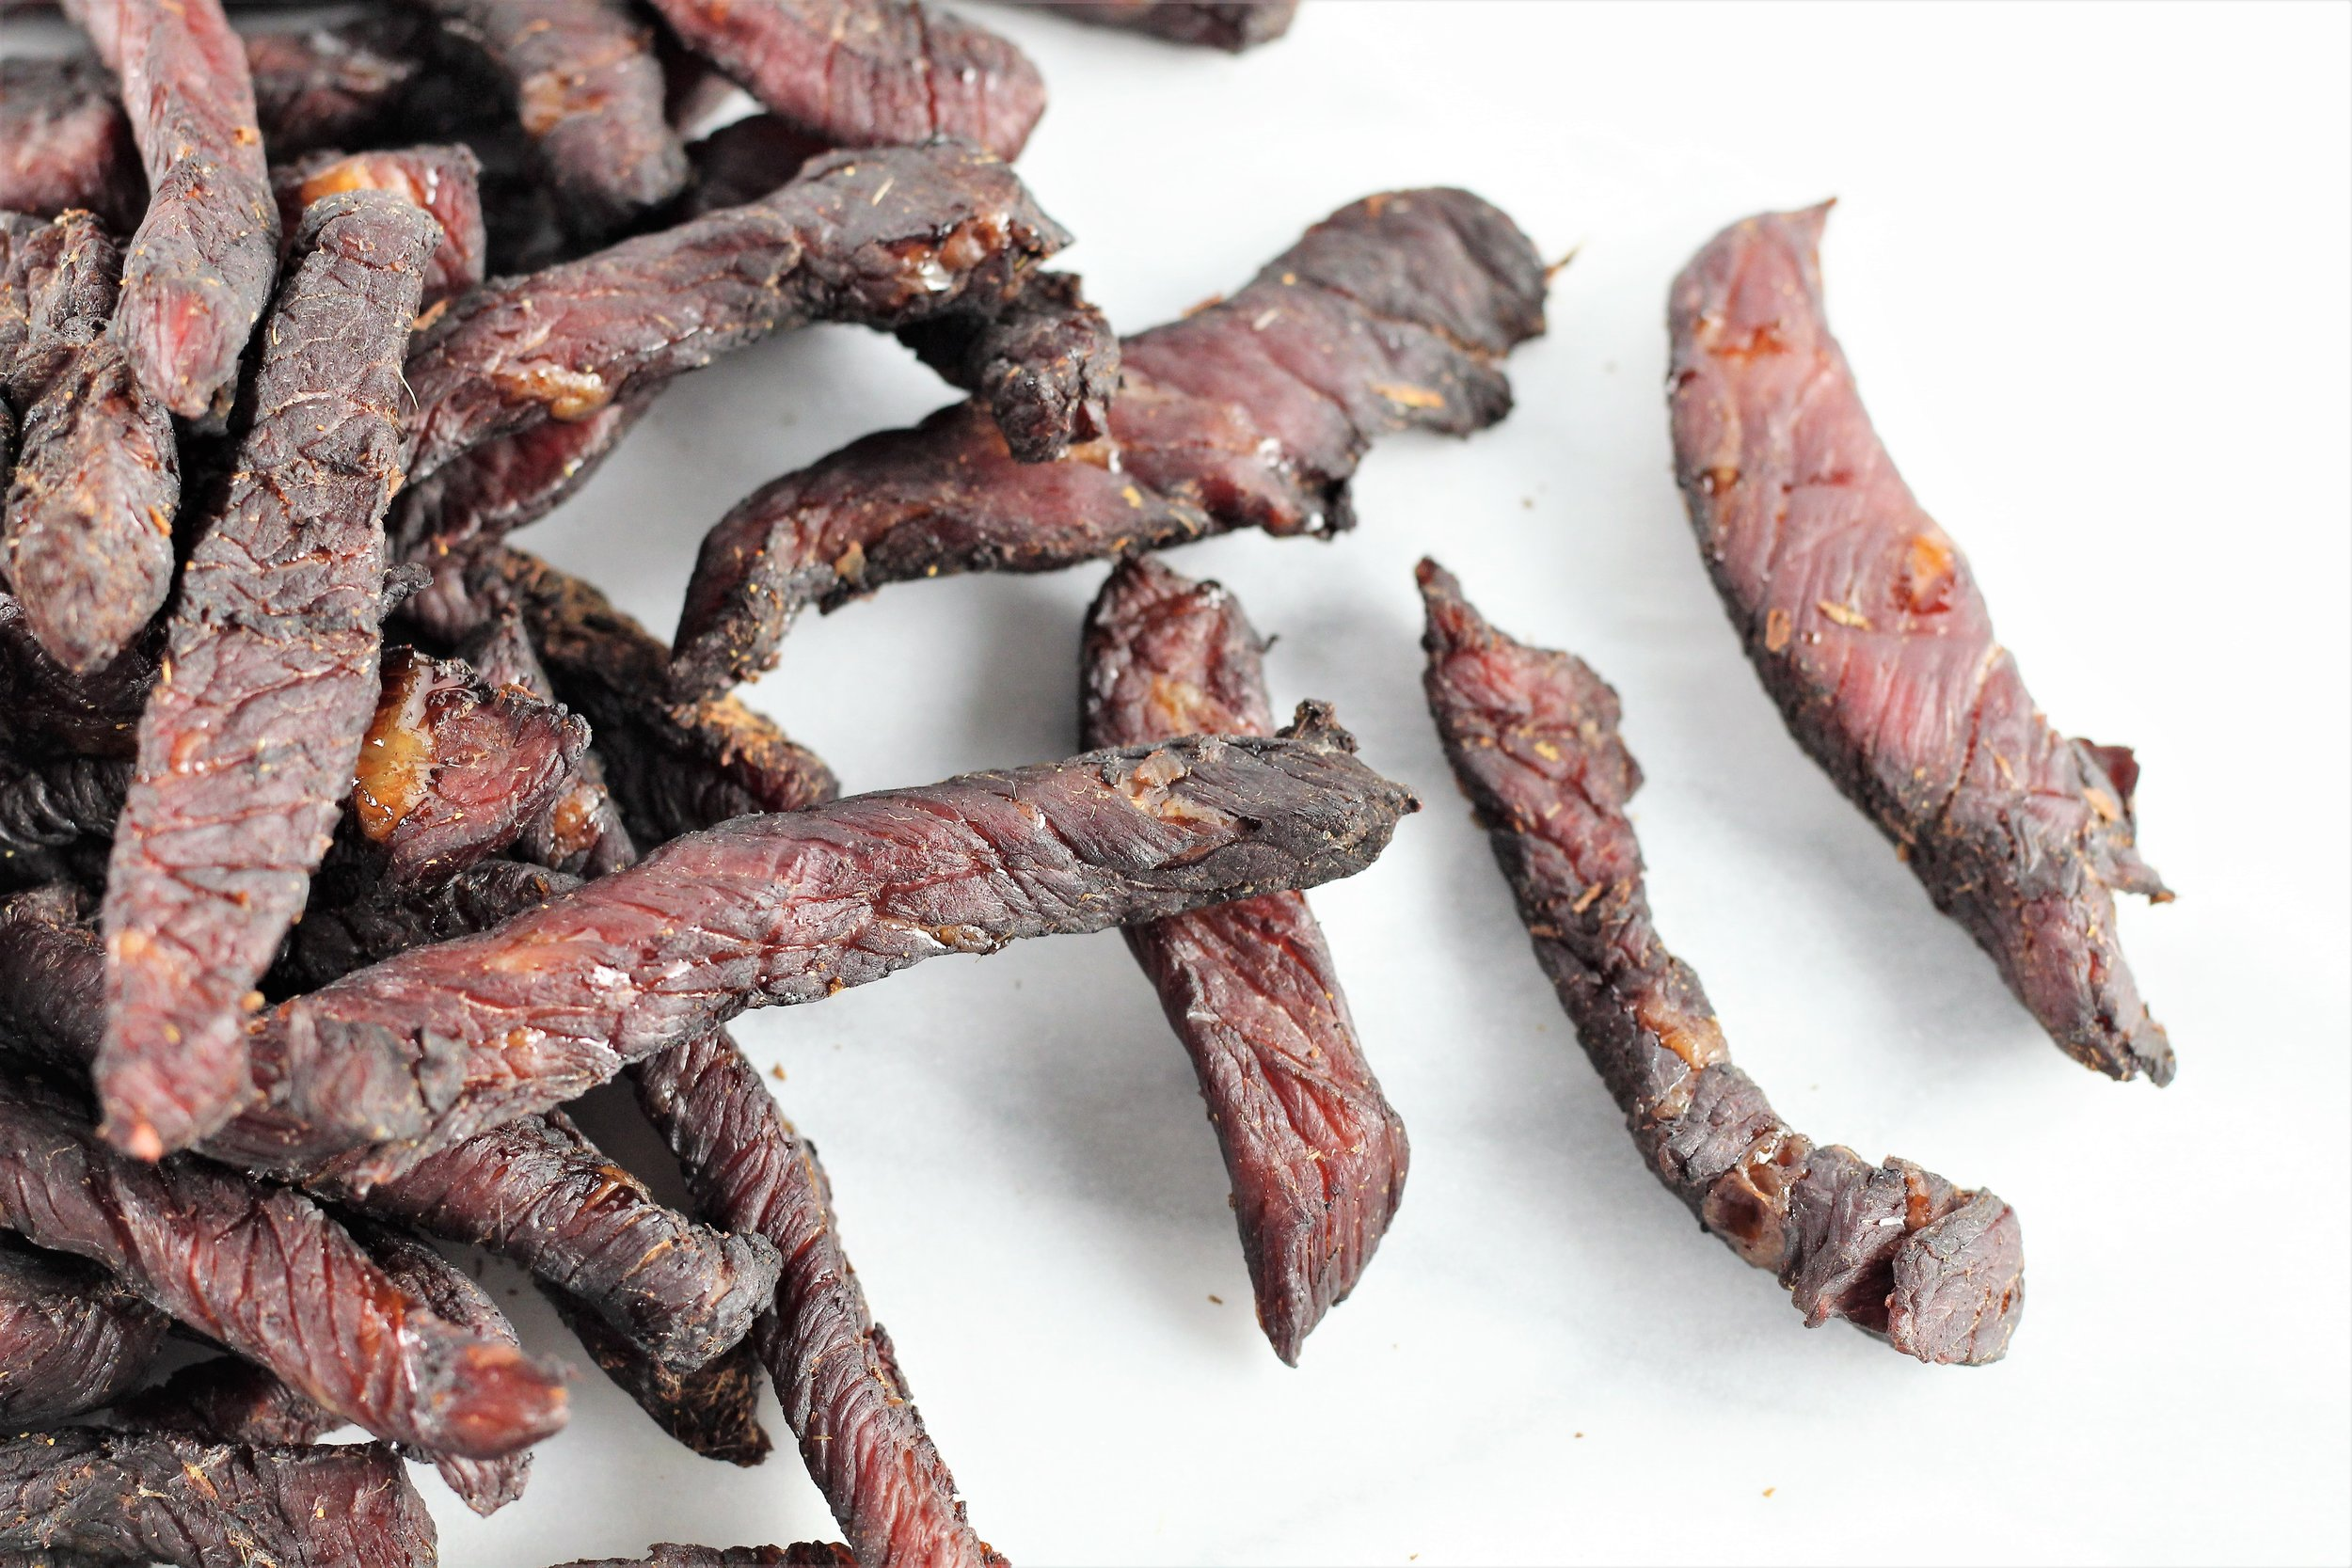 Gluten and Preservative Free Beef Jerky